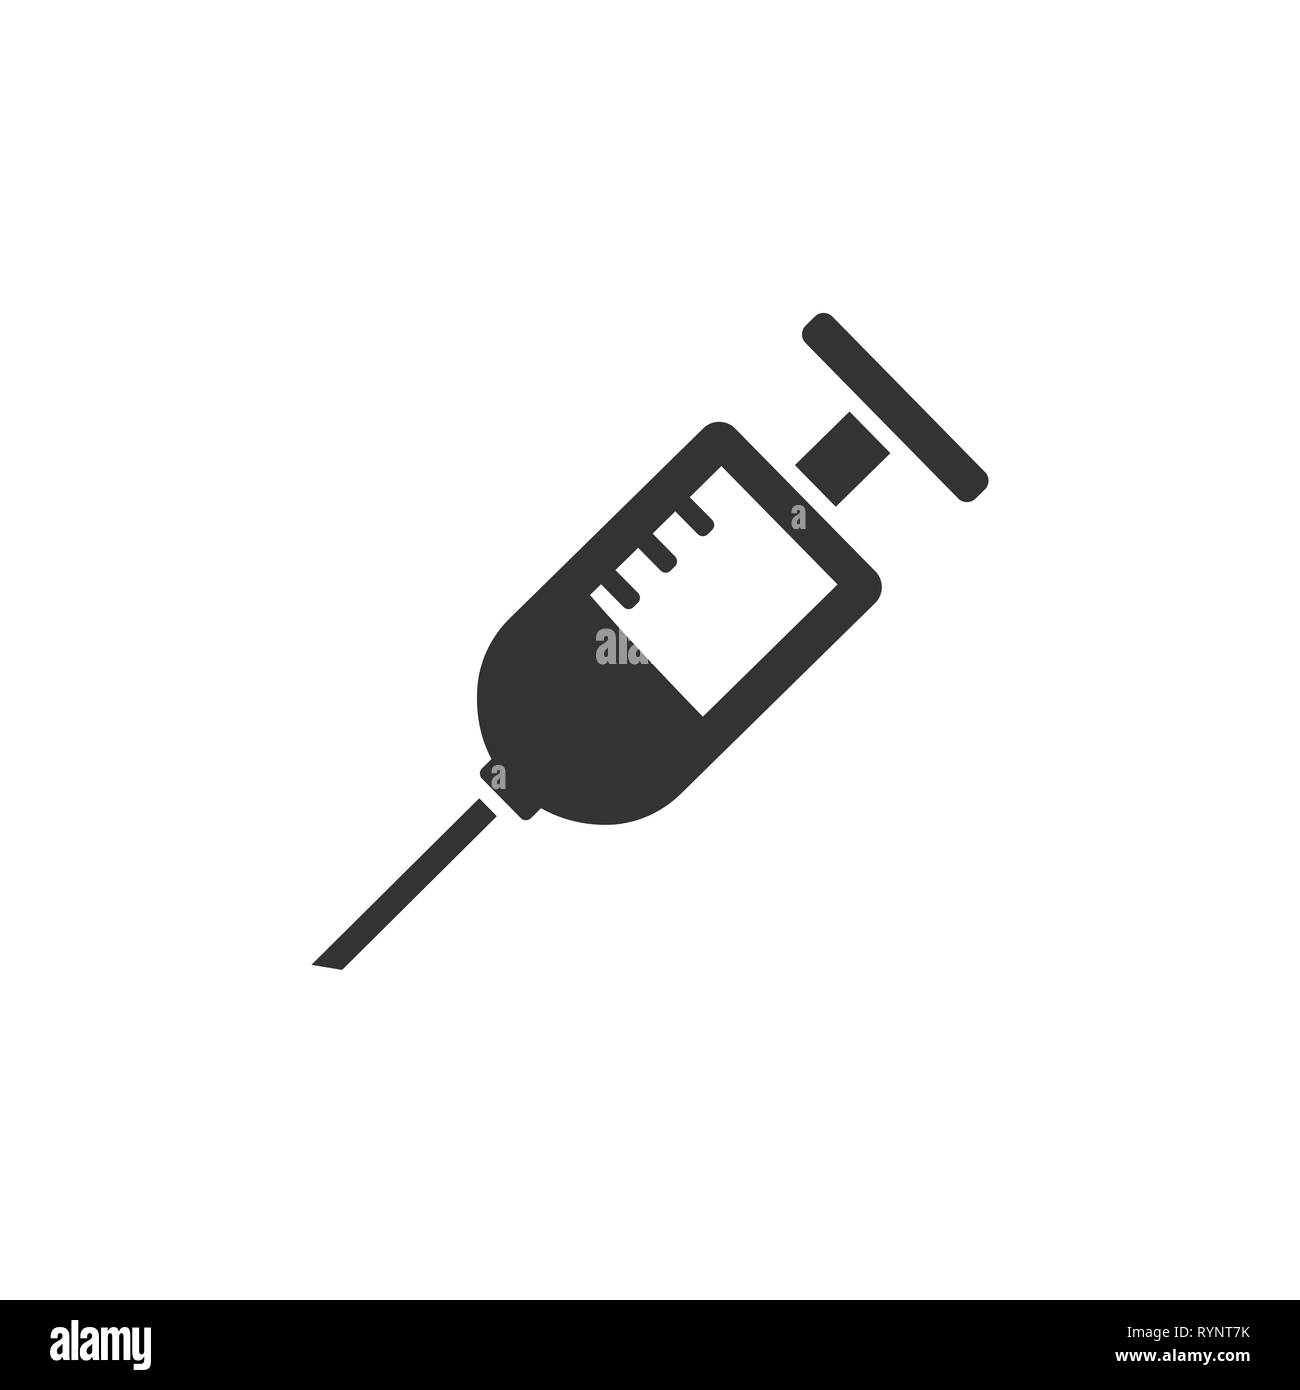 Syringe icon. Medicine icon. Isolated vector illustration - Stock Image